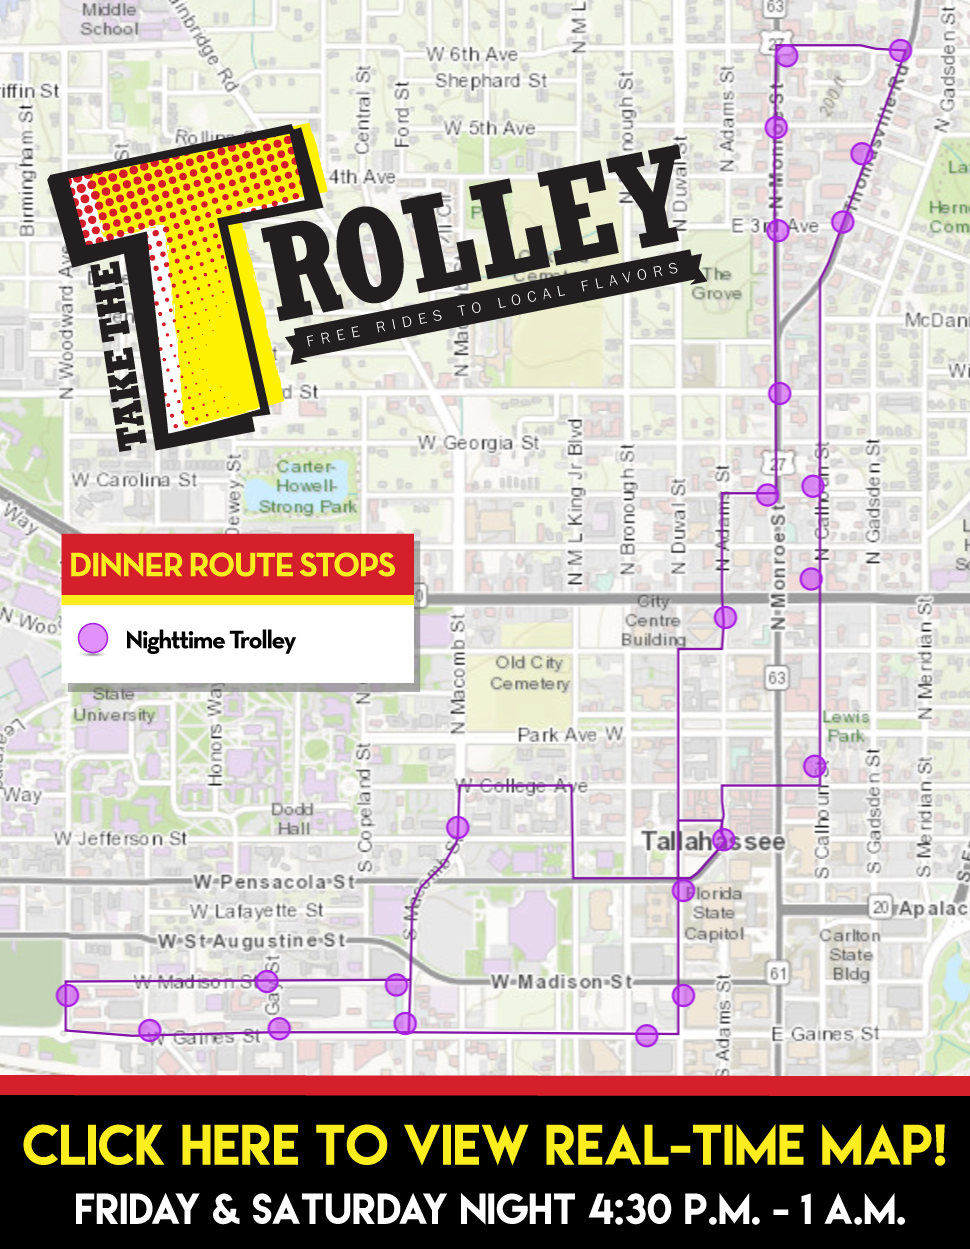 Trolley Dinner Route Map